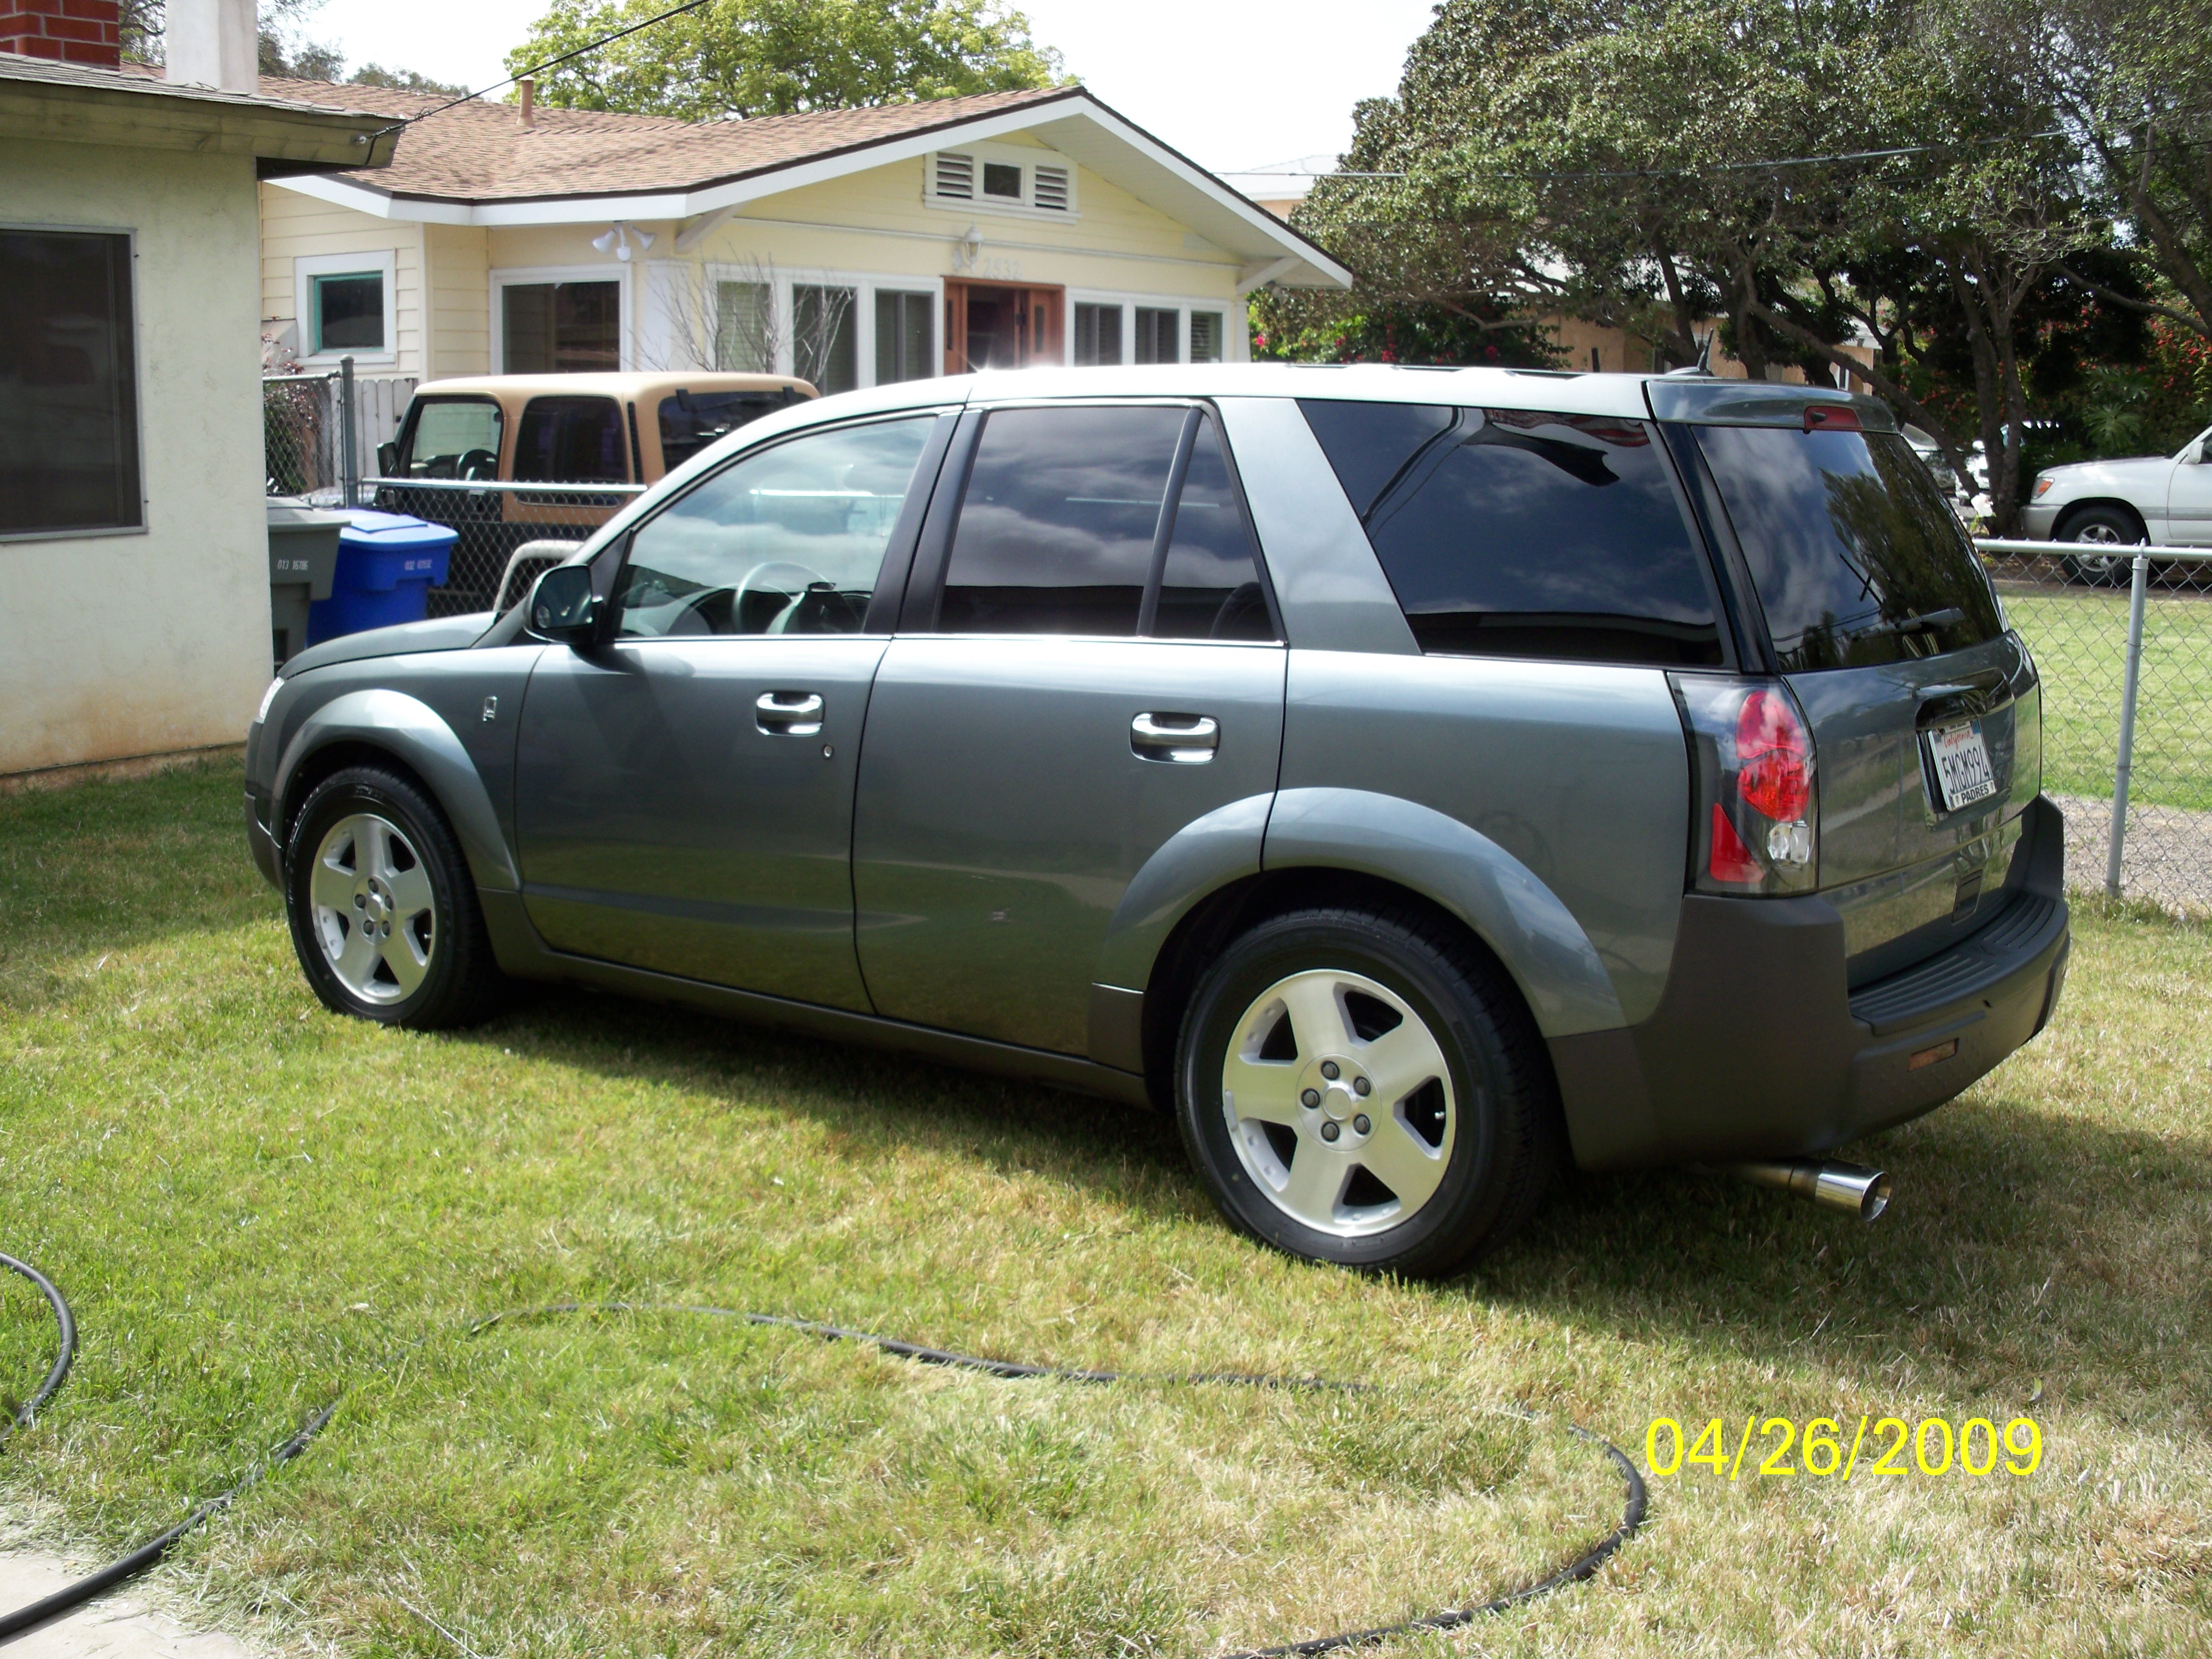 Tony's 2005 Saturn VUE